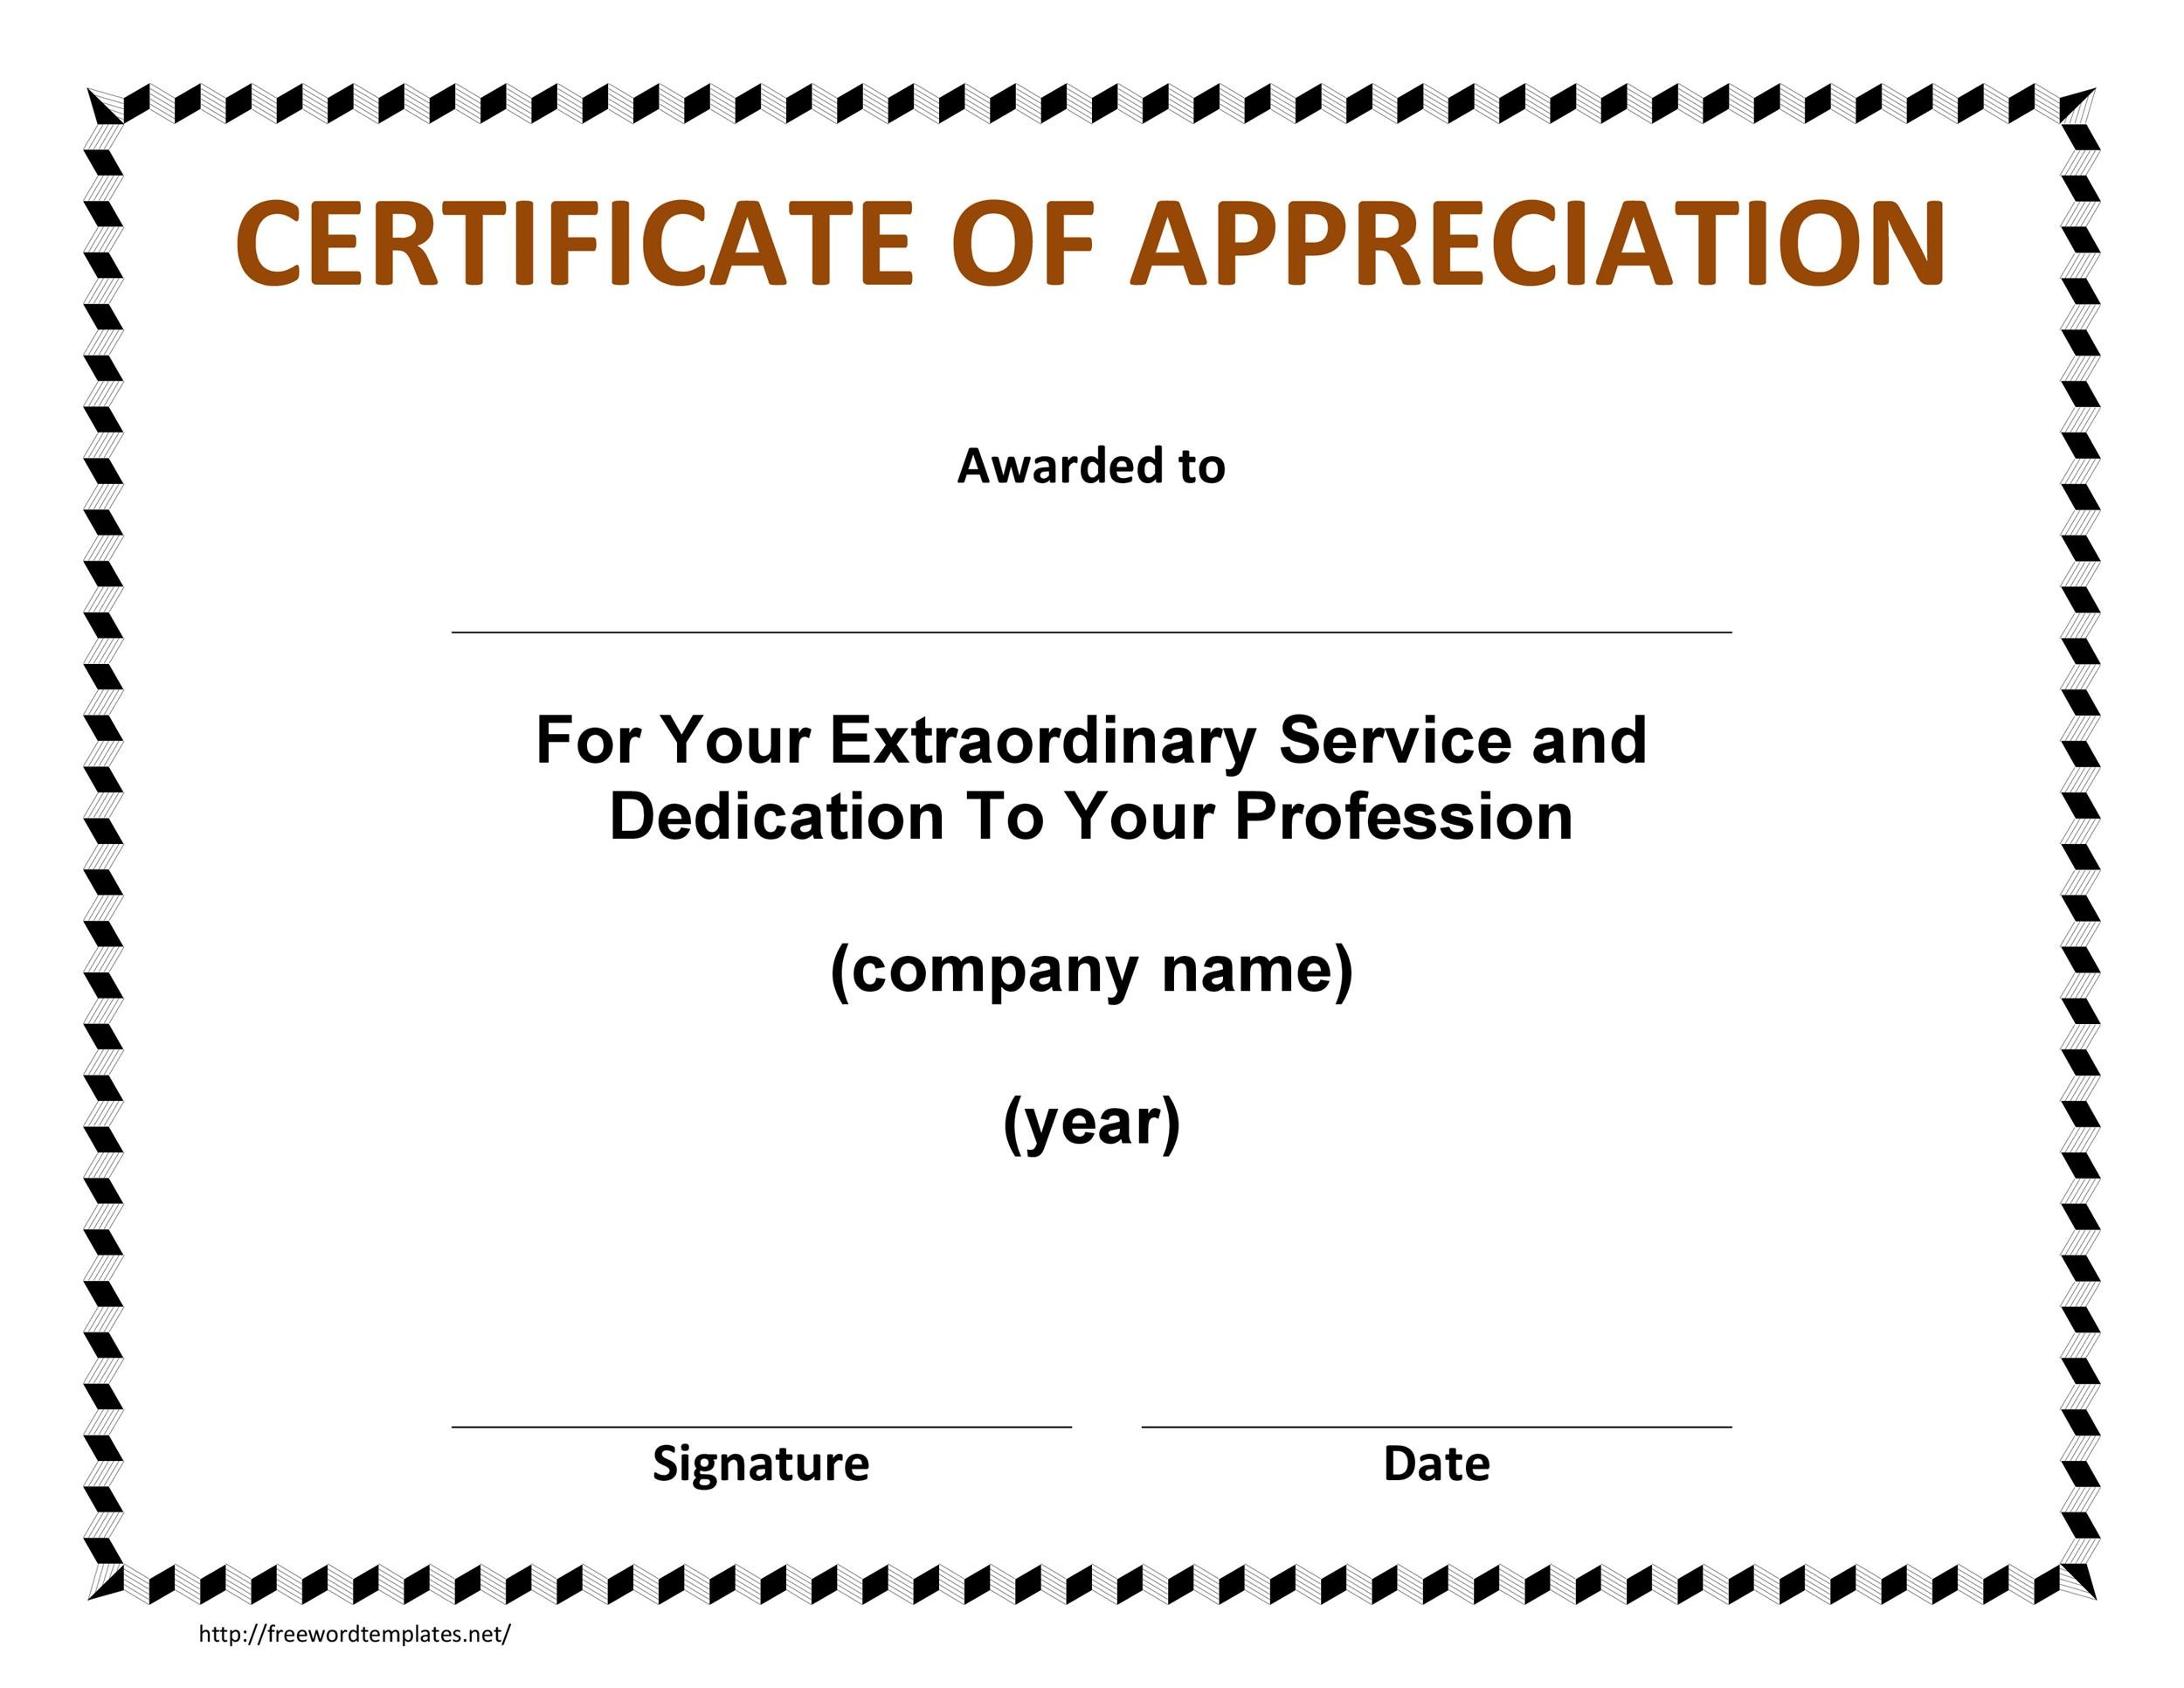 30 free certificate of appreciation templates and letters printable certificate of appreciation 04 yelopaper Image collections